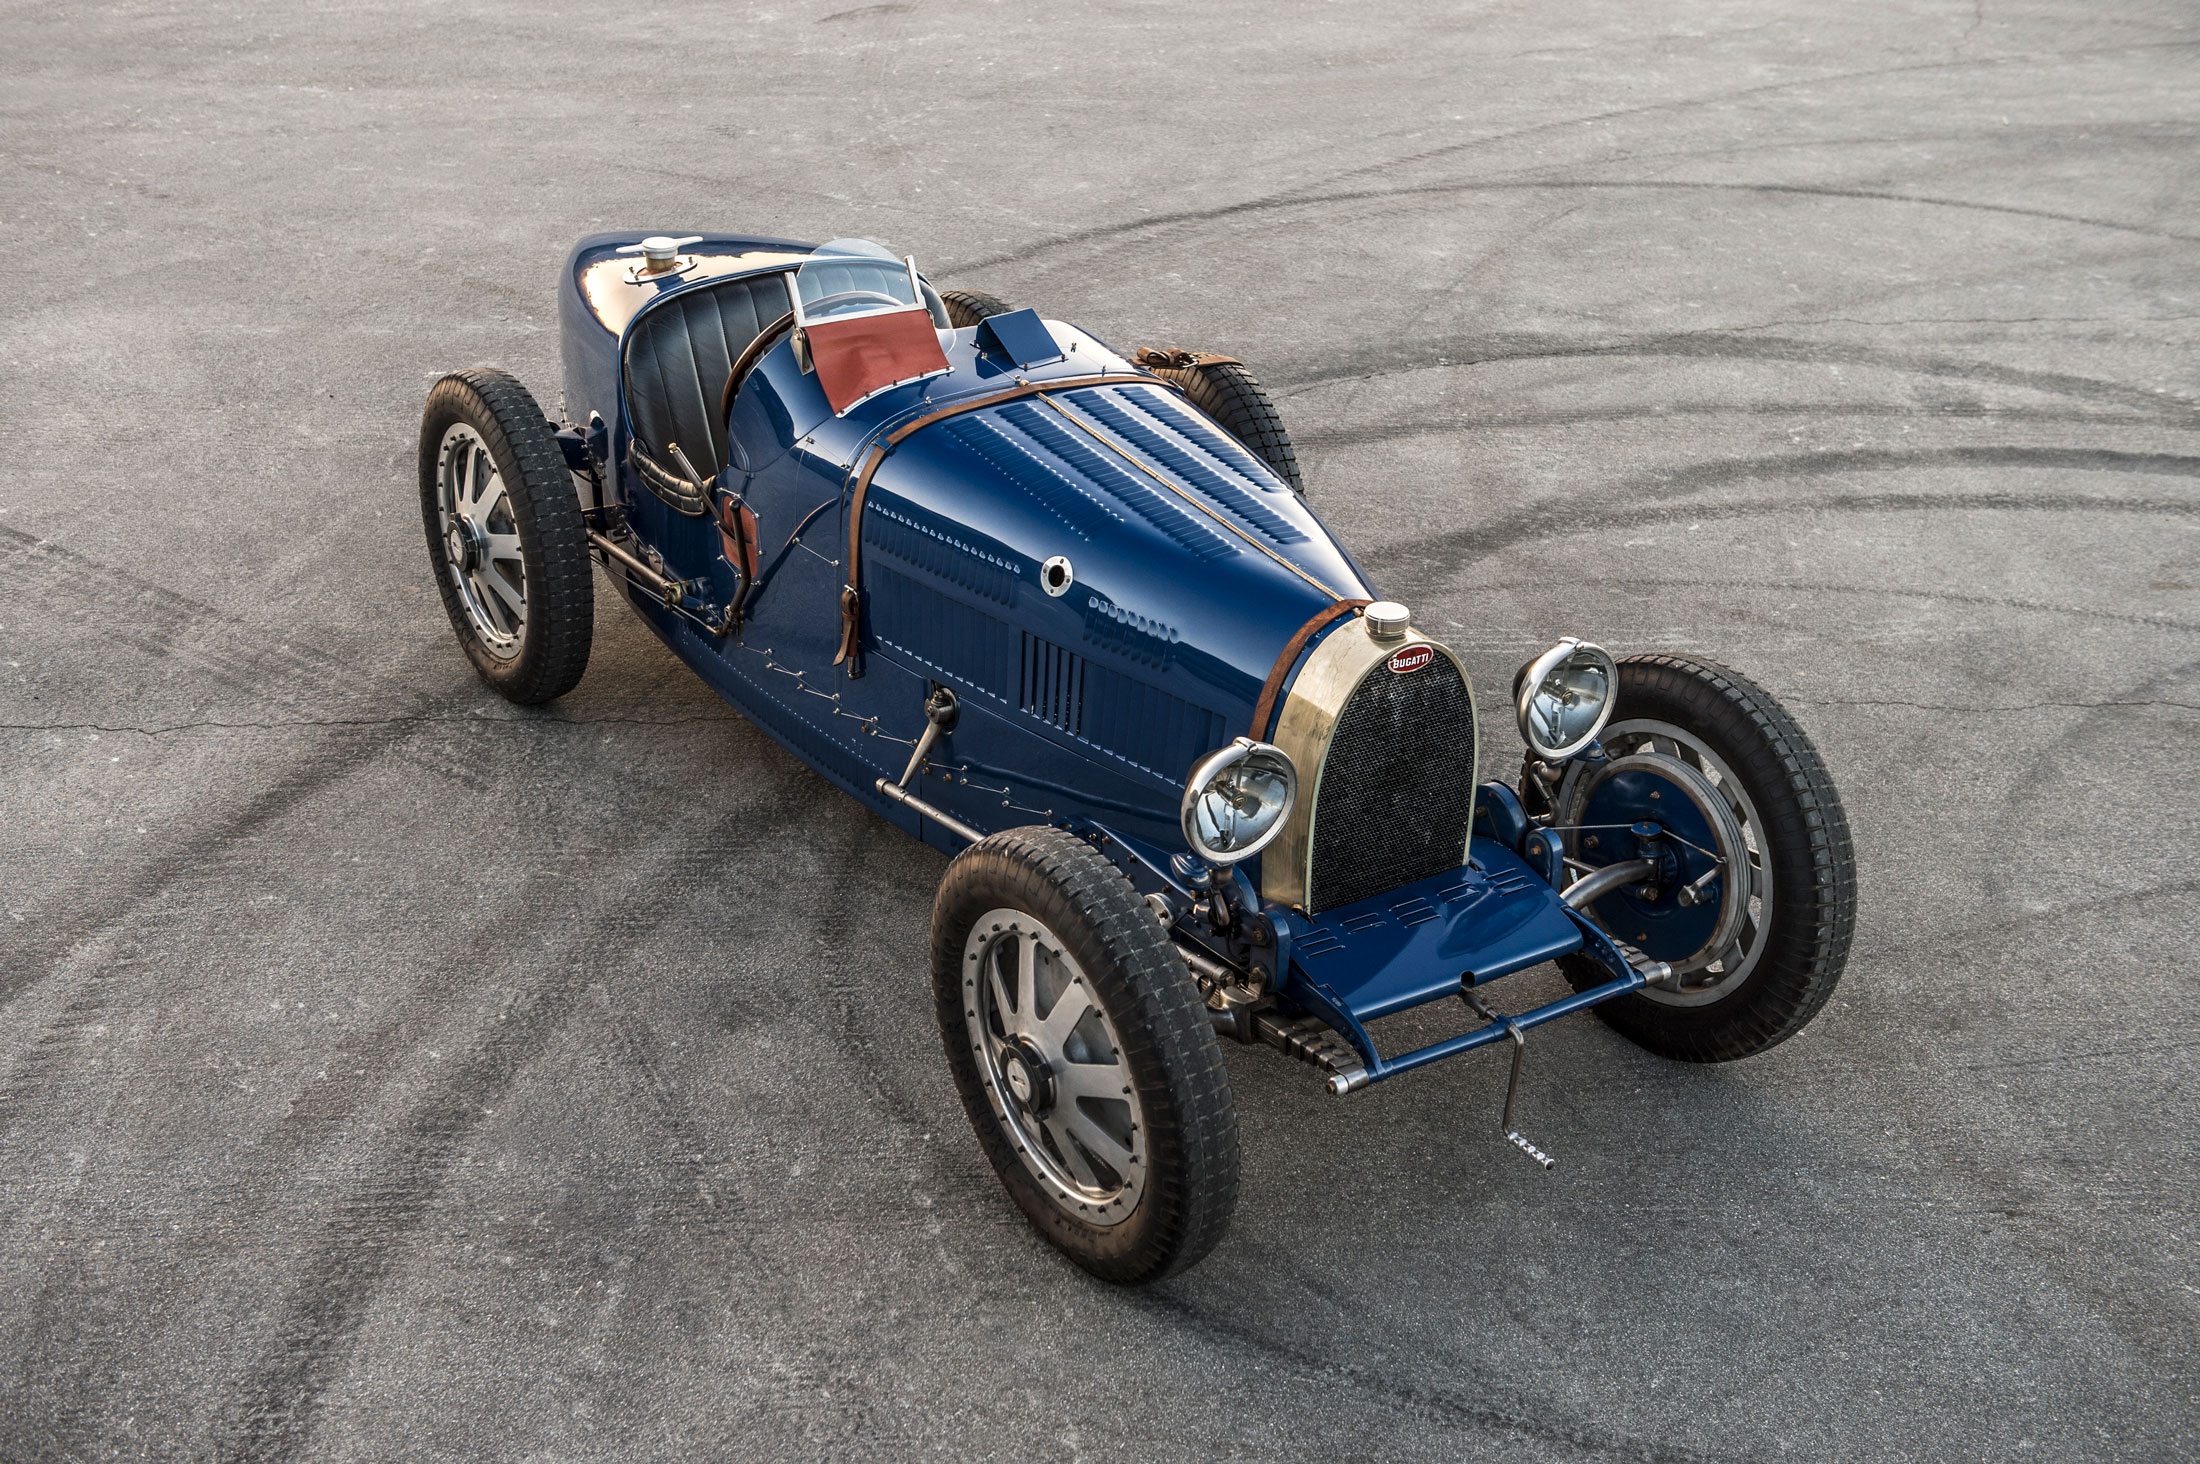 """Is a Pur Sang a Bugatti? How do we determine if replicas """"count""""? 